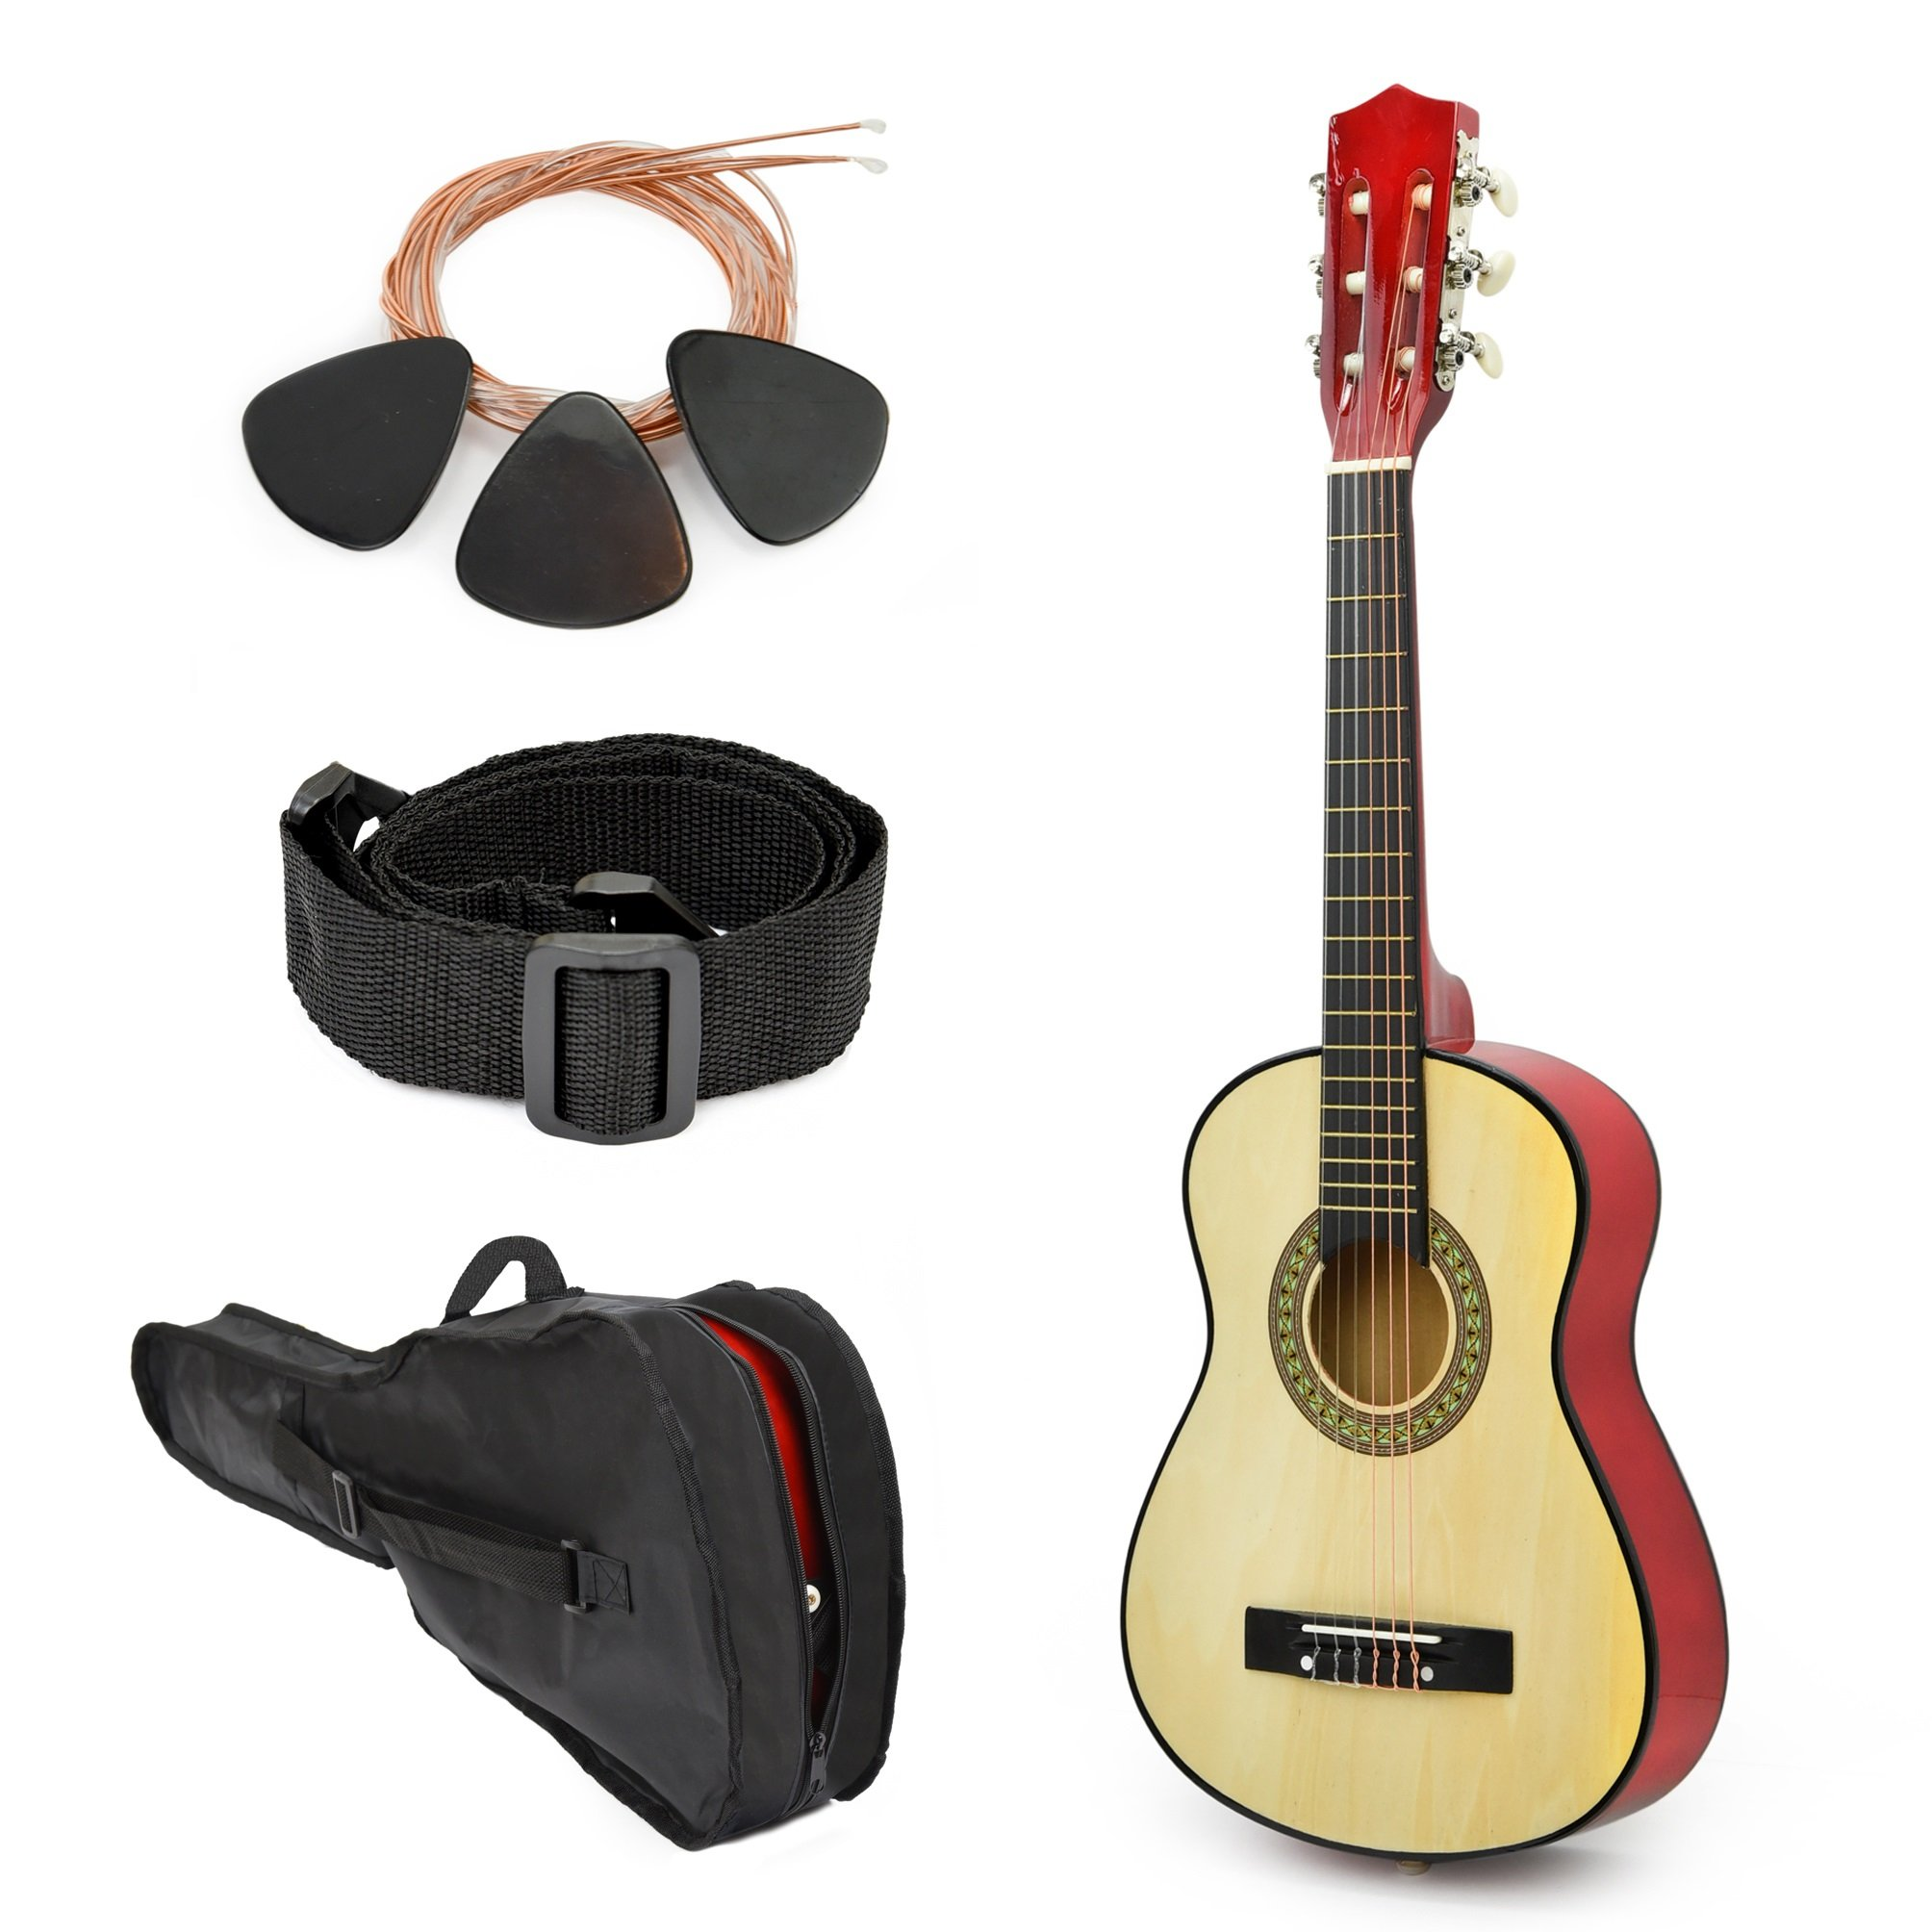 NEW! 30'' Left Handed Natural Wood Guitar With Case and Accessories for Kids/Boys/Beginners